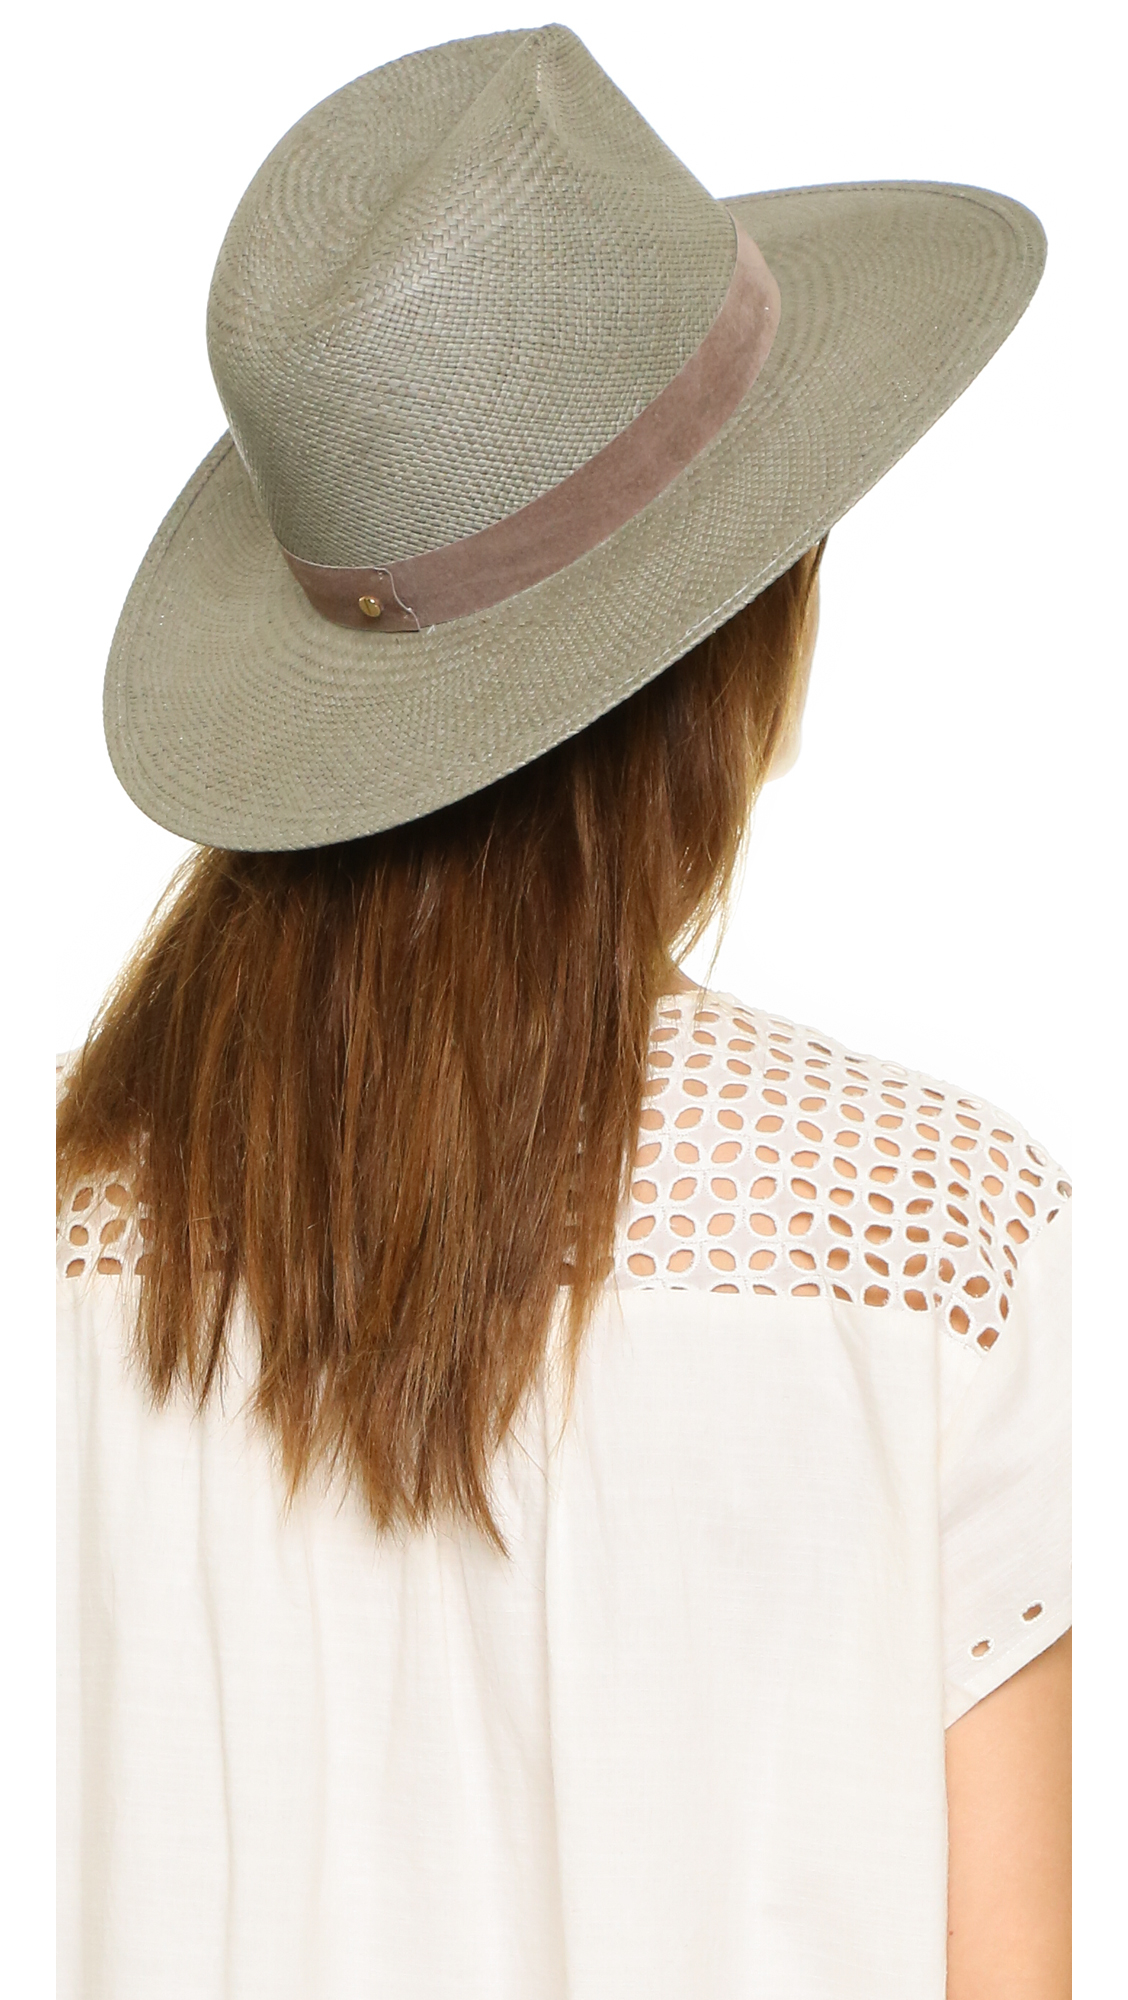 a301595e Janessa Leone Bryony Short Brimmed Panama Hat in Green - Lyst